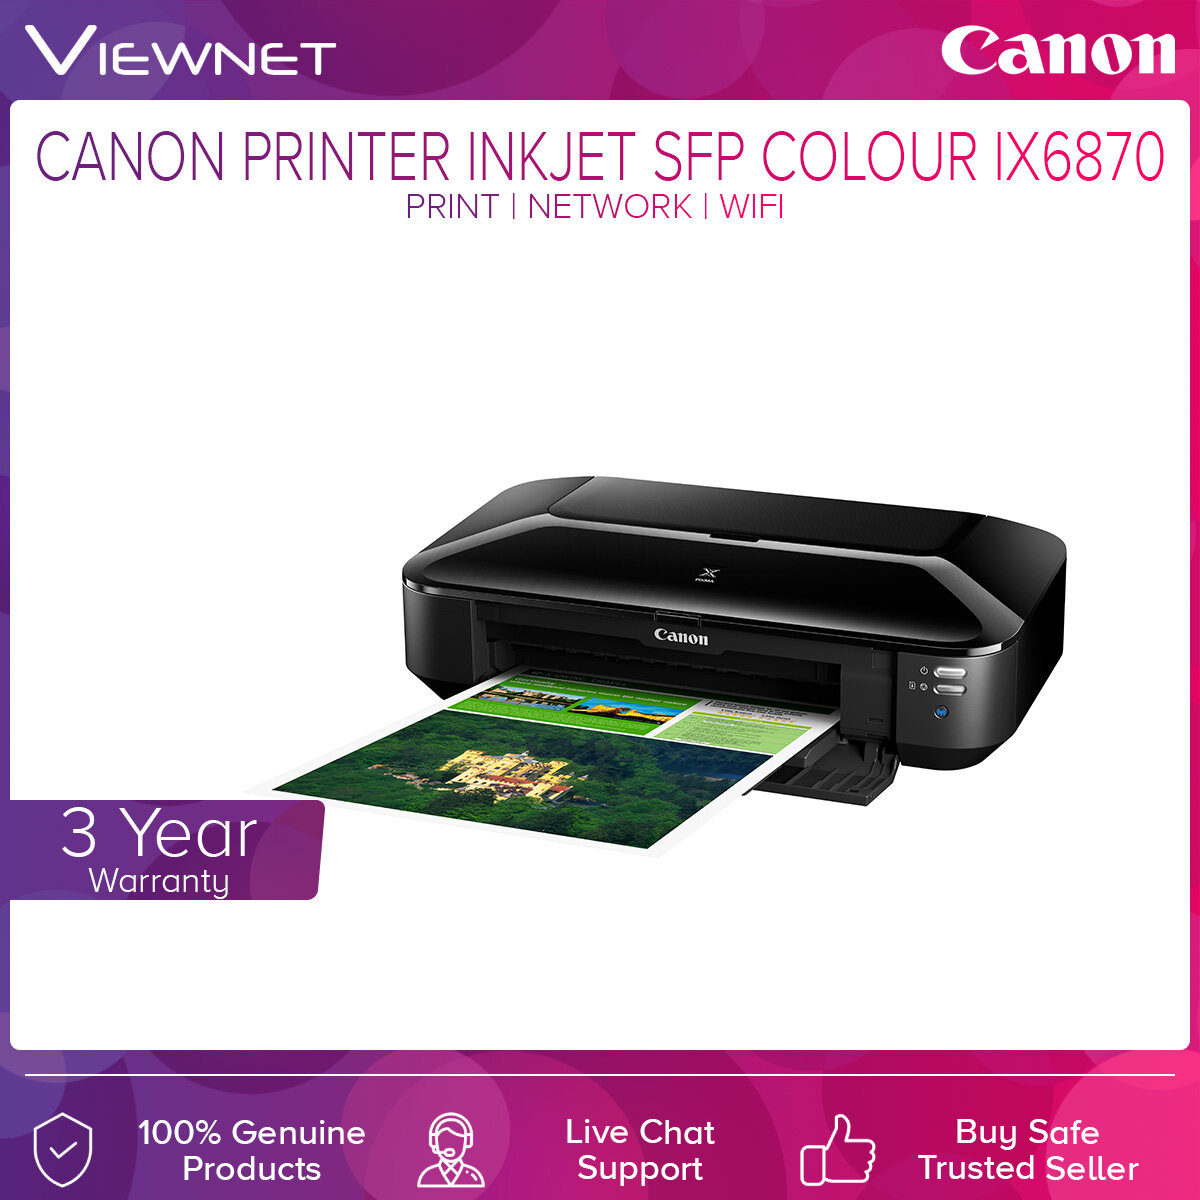 Canon PIXMA iX6870 Advanced Wireless Office A3 Printer Print Wireless Network AirPrint